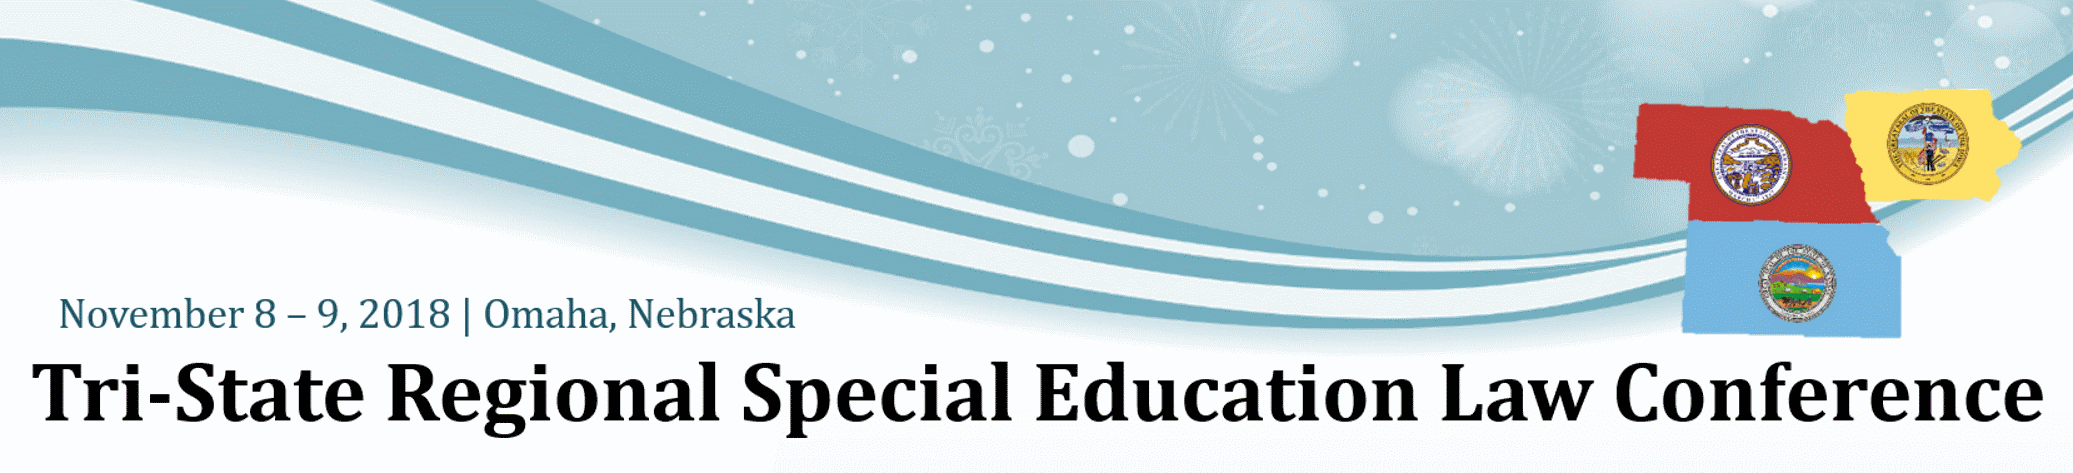 2018 Tri-State Regional Special Education Law Conference